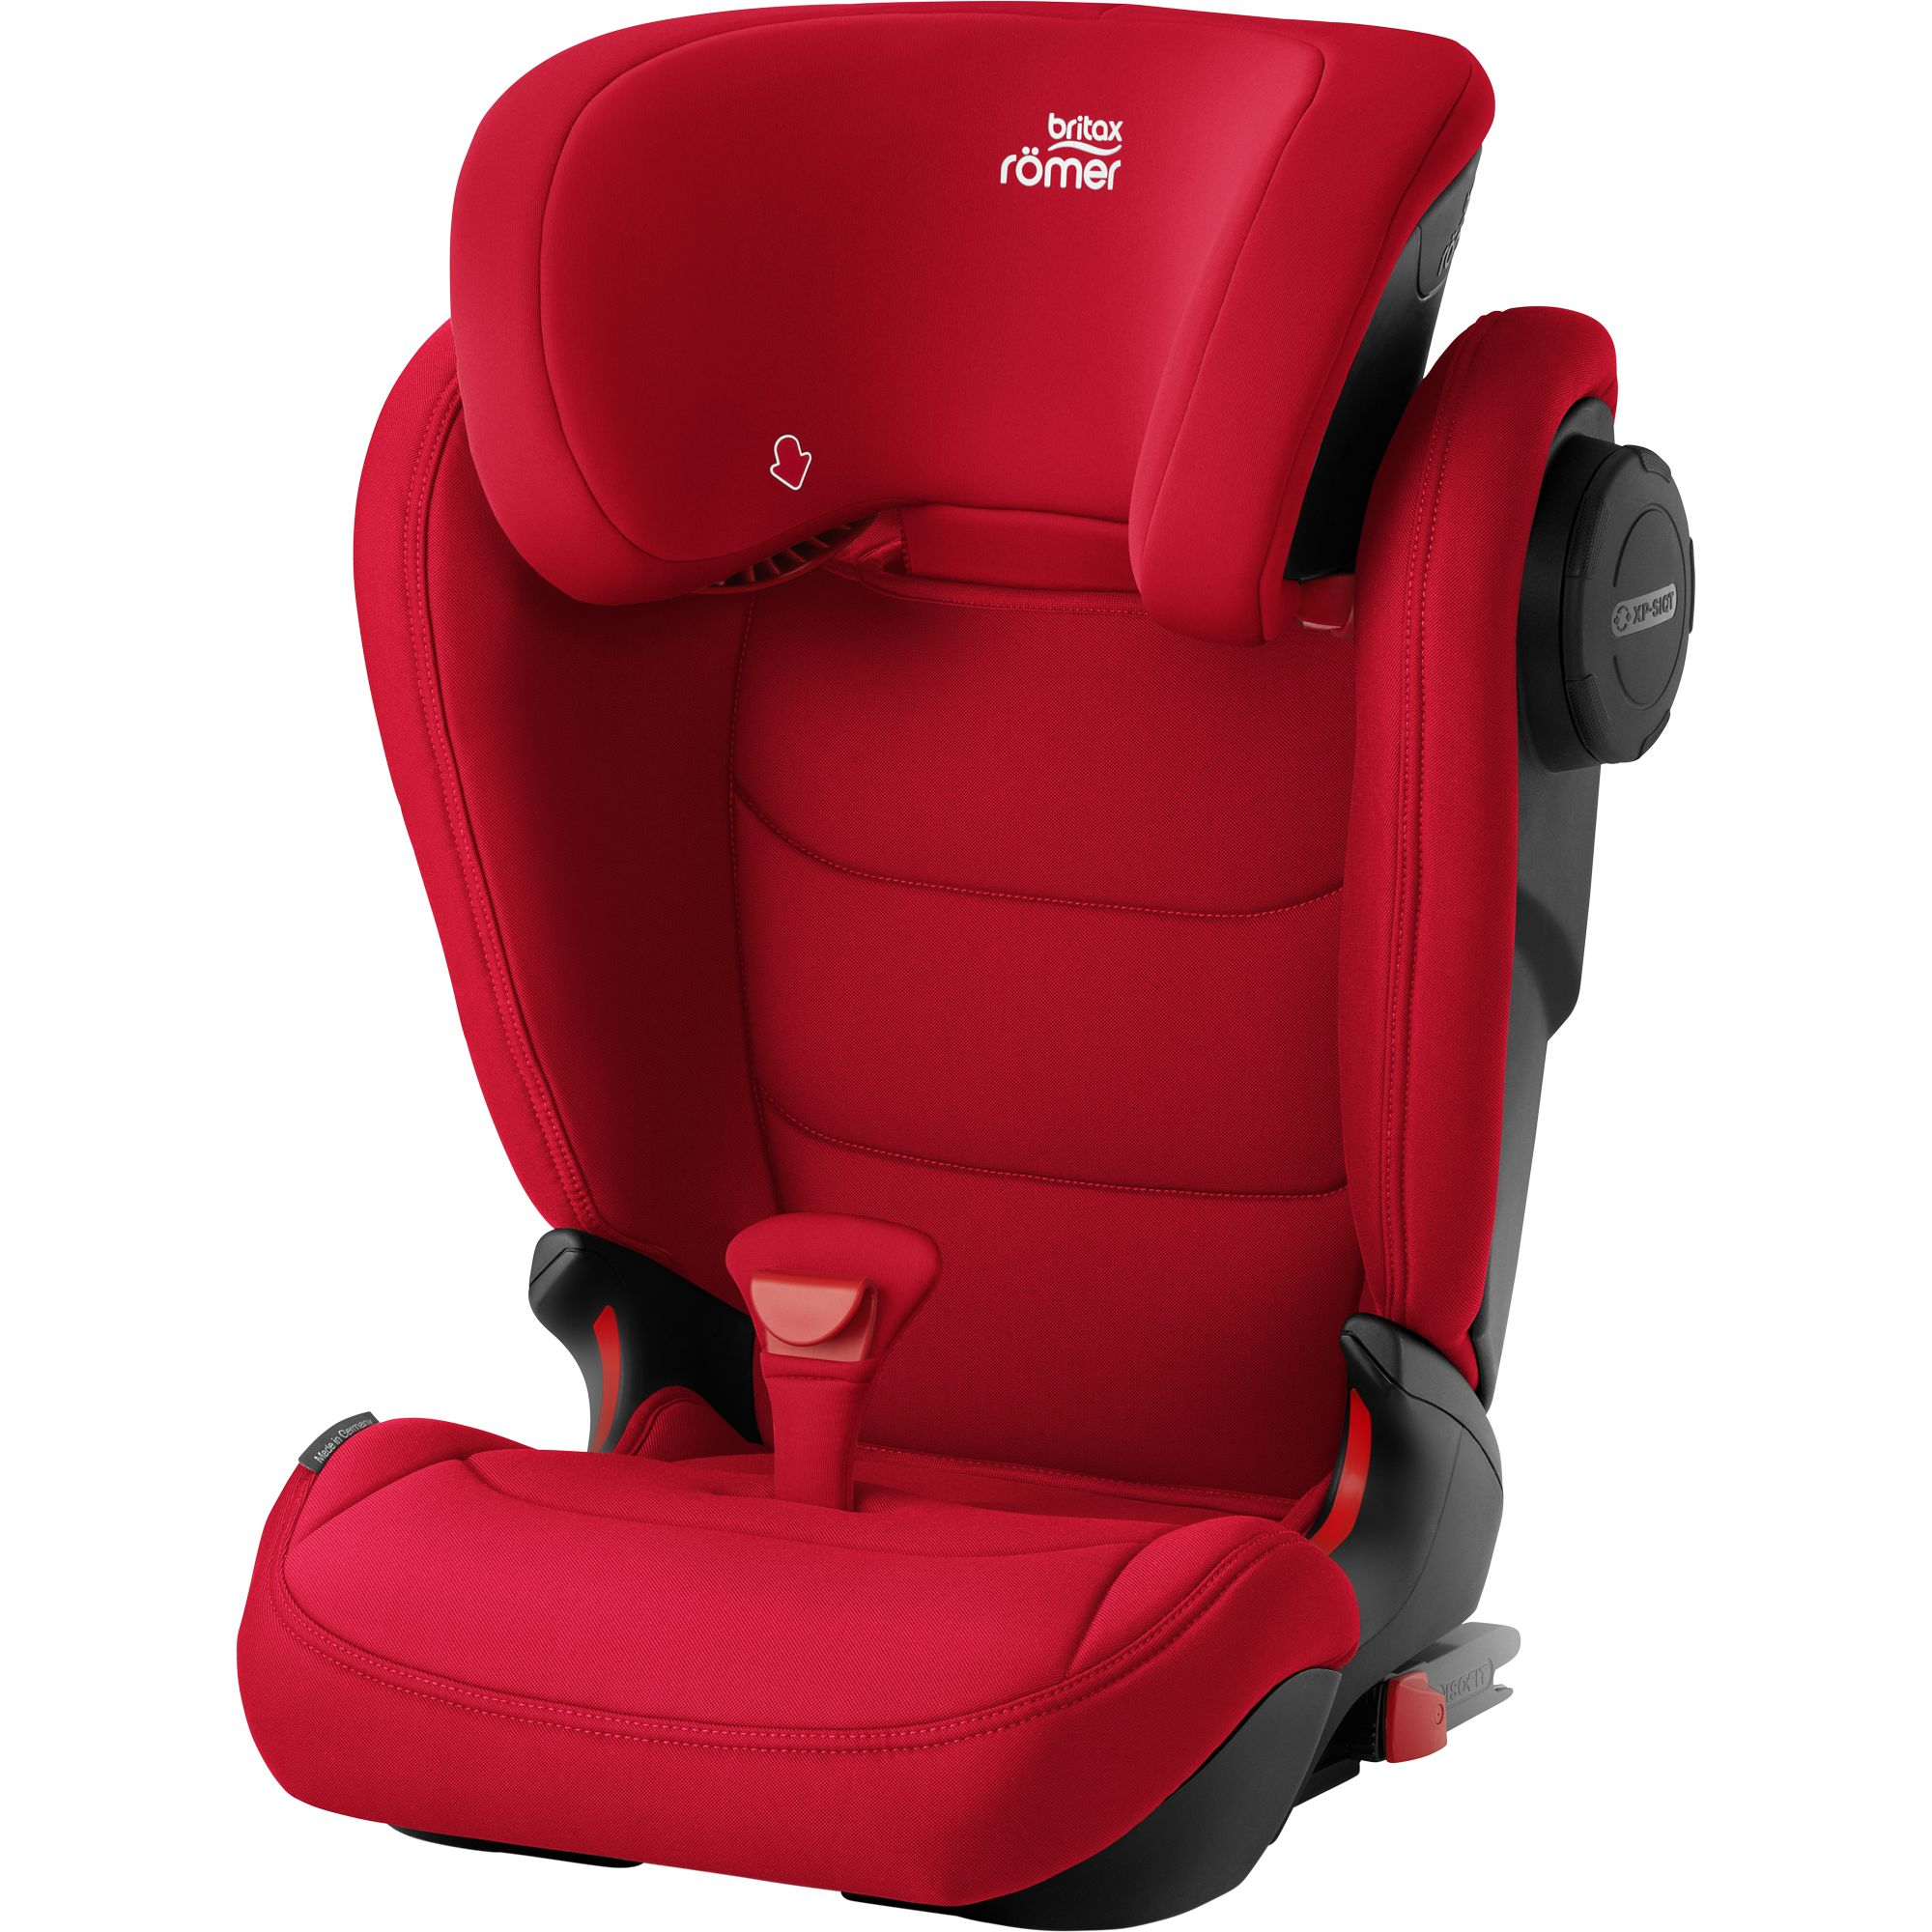 ROMER Kidfix III M Fire Red 2020